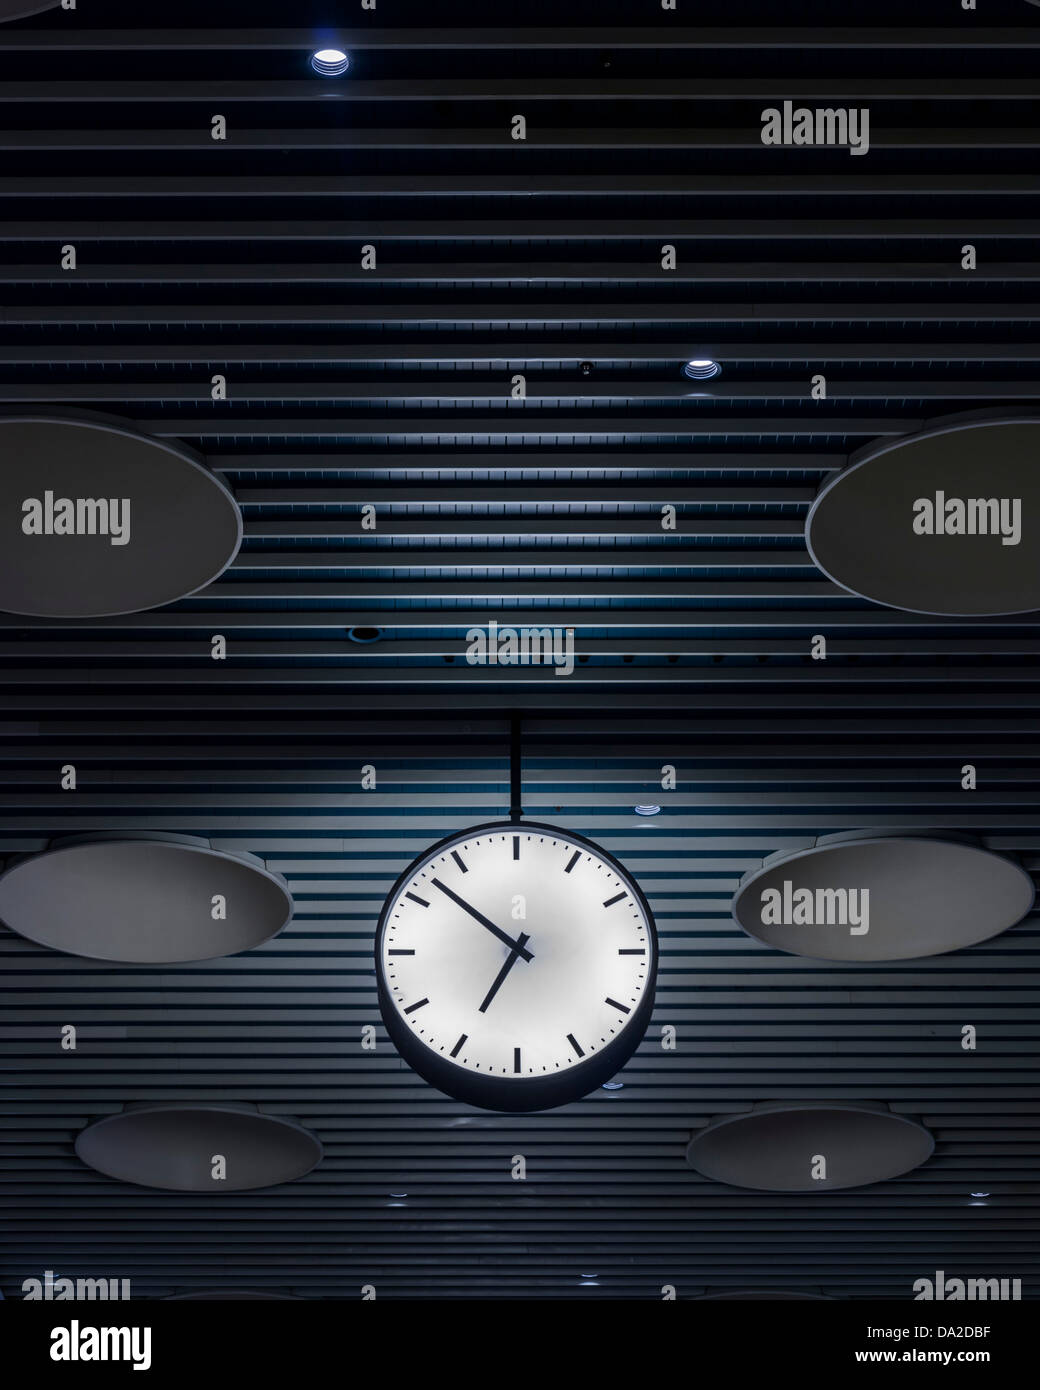 Copenhagen Airport, Copenhagen, Denmark. Architect: Vilhem Lauritzen, 1998. Ceiling and clock, Terminal 2. Stock Photo